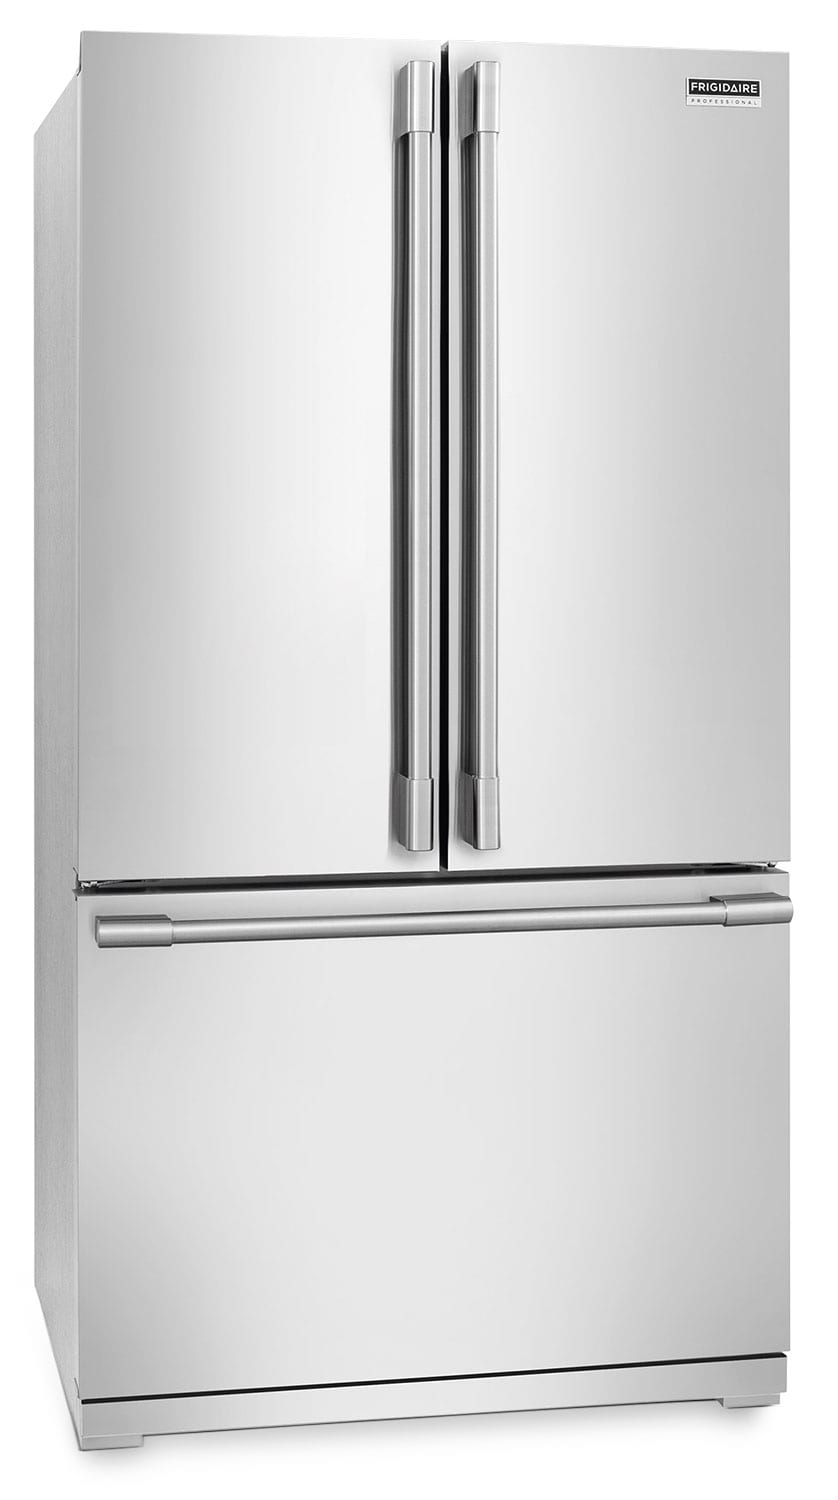 Frigidaire Professional Counter-Depth French-Door Refrigerator (22.6 Cu. Ft.) - FPBG2277RF